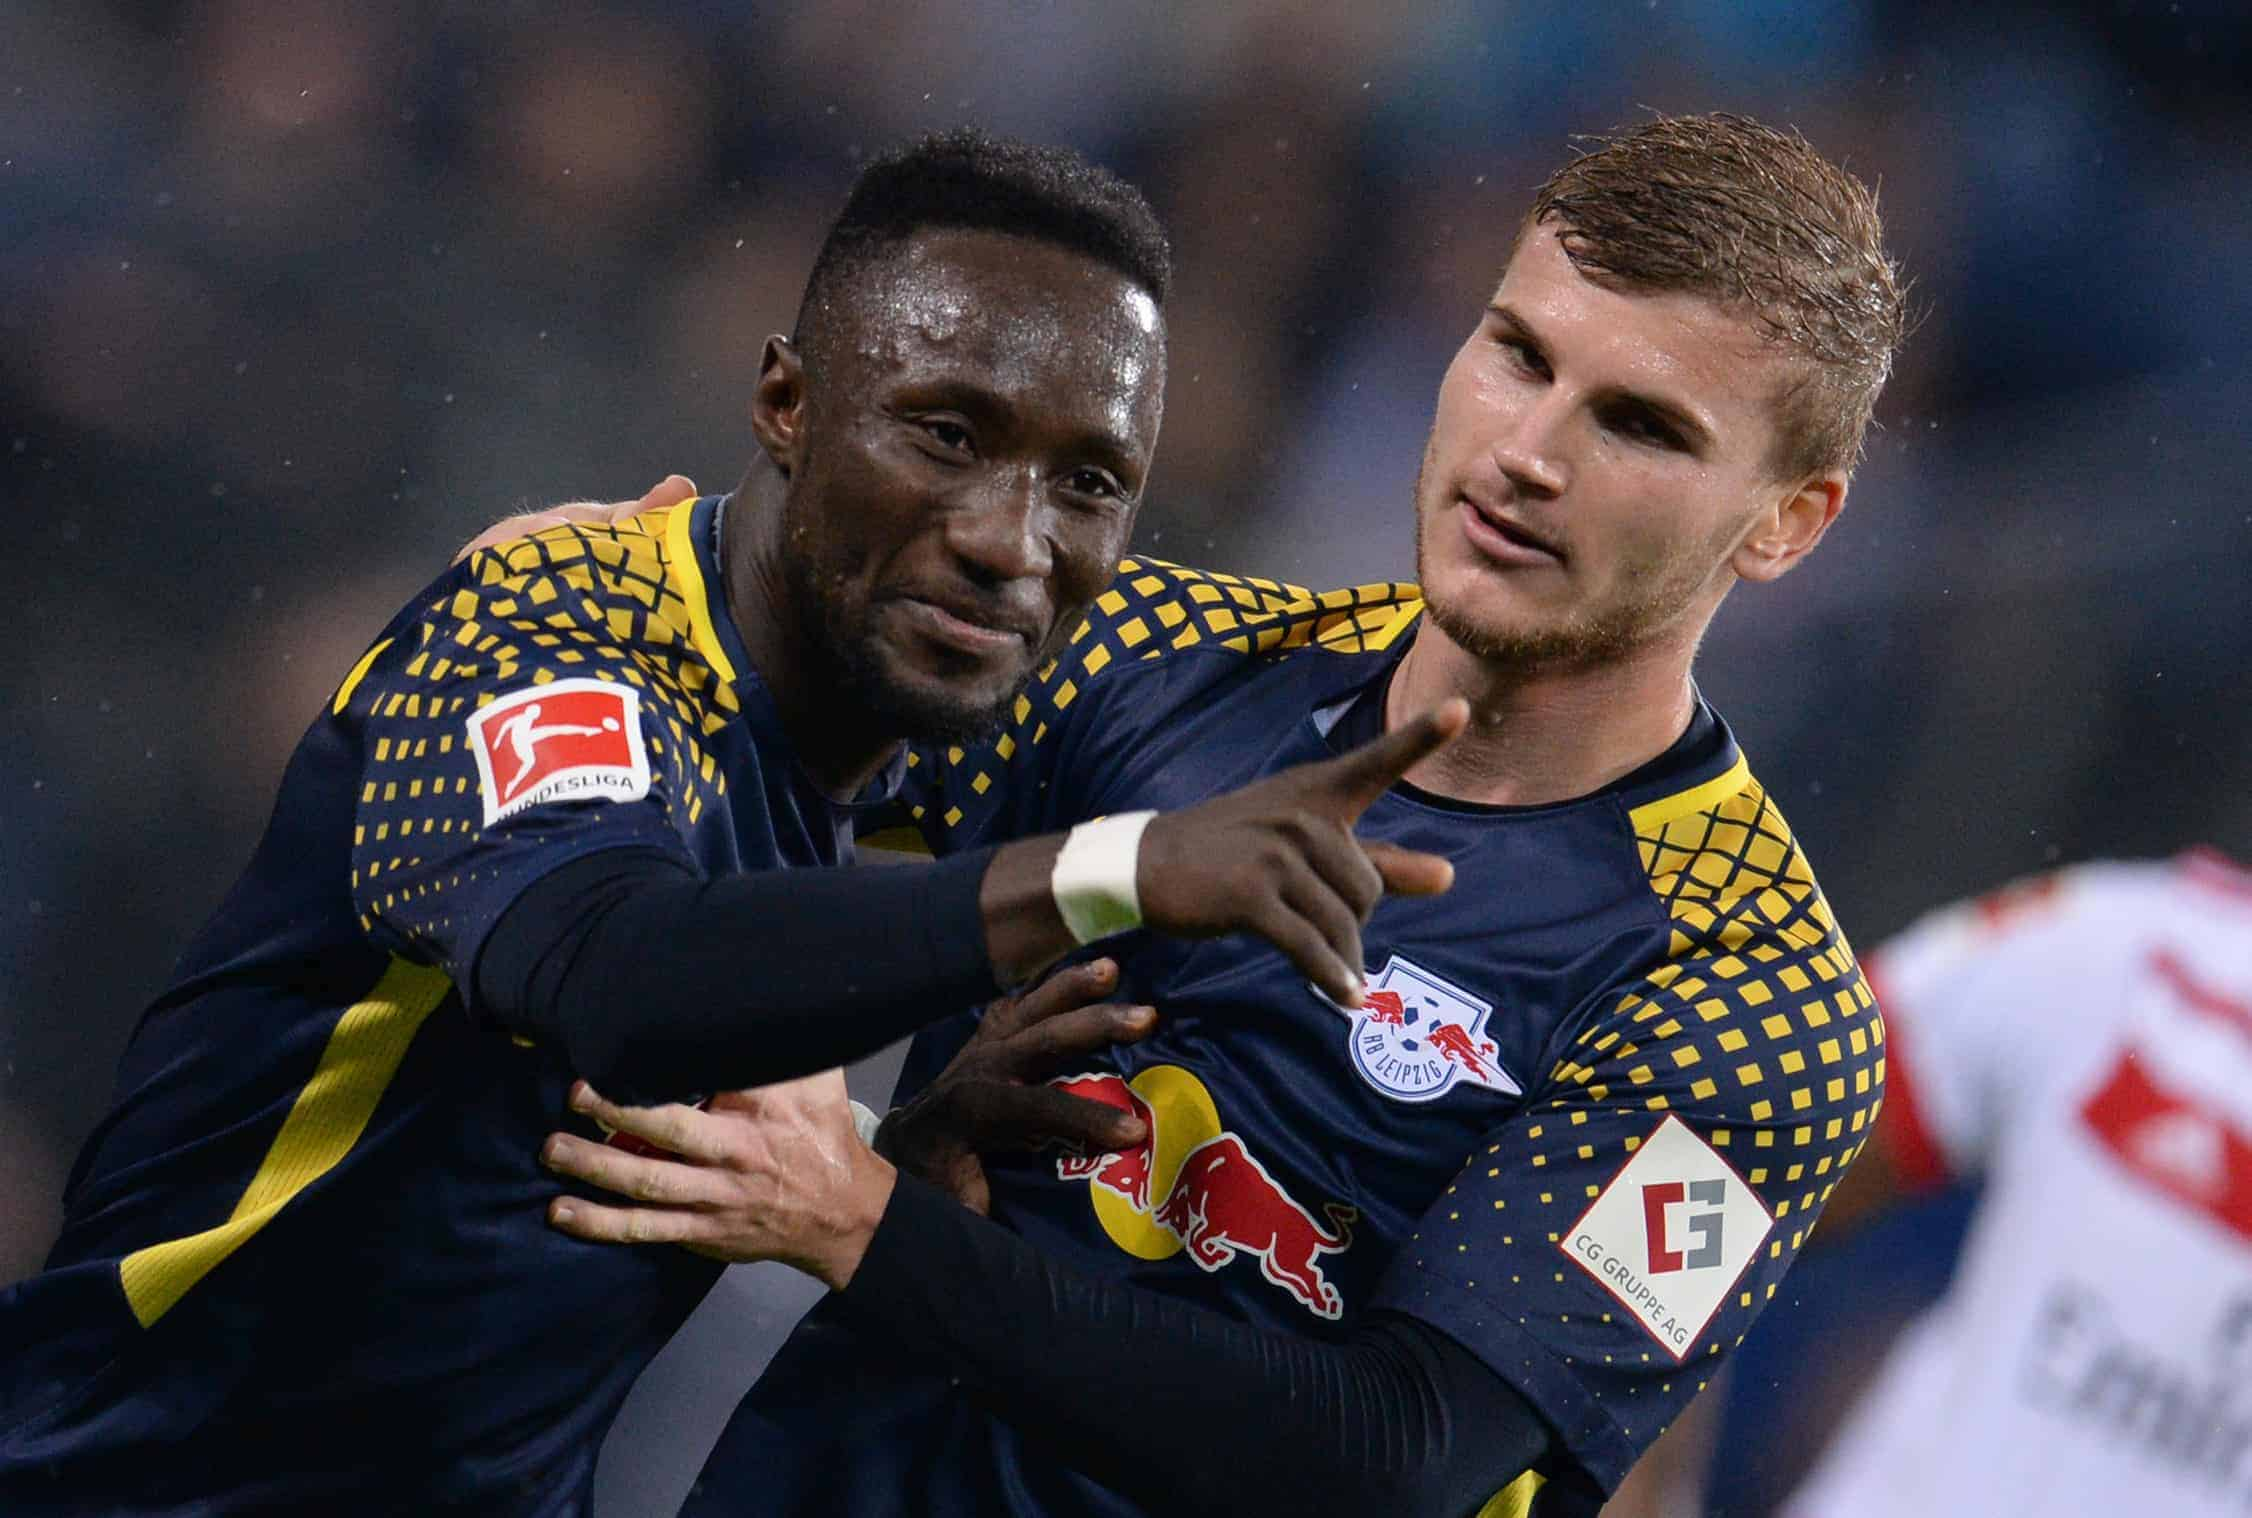 Leipzig's Naby Keita (L) celebrates after scoring the 0-1 lead with team-mate Timo Werner during the Bundesliga soccer match between Hamburg SV and RB Leipzig in the Volksparkstadium in Hamburg, Germany, 08 September 2017. Photo: Daniel Reinhardt/dpa